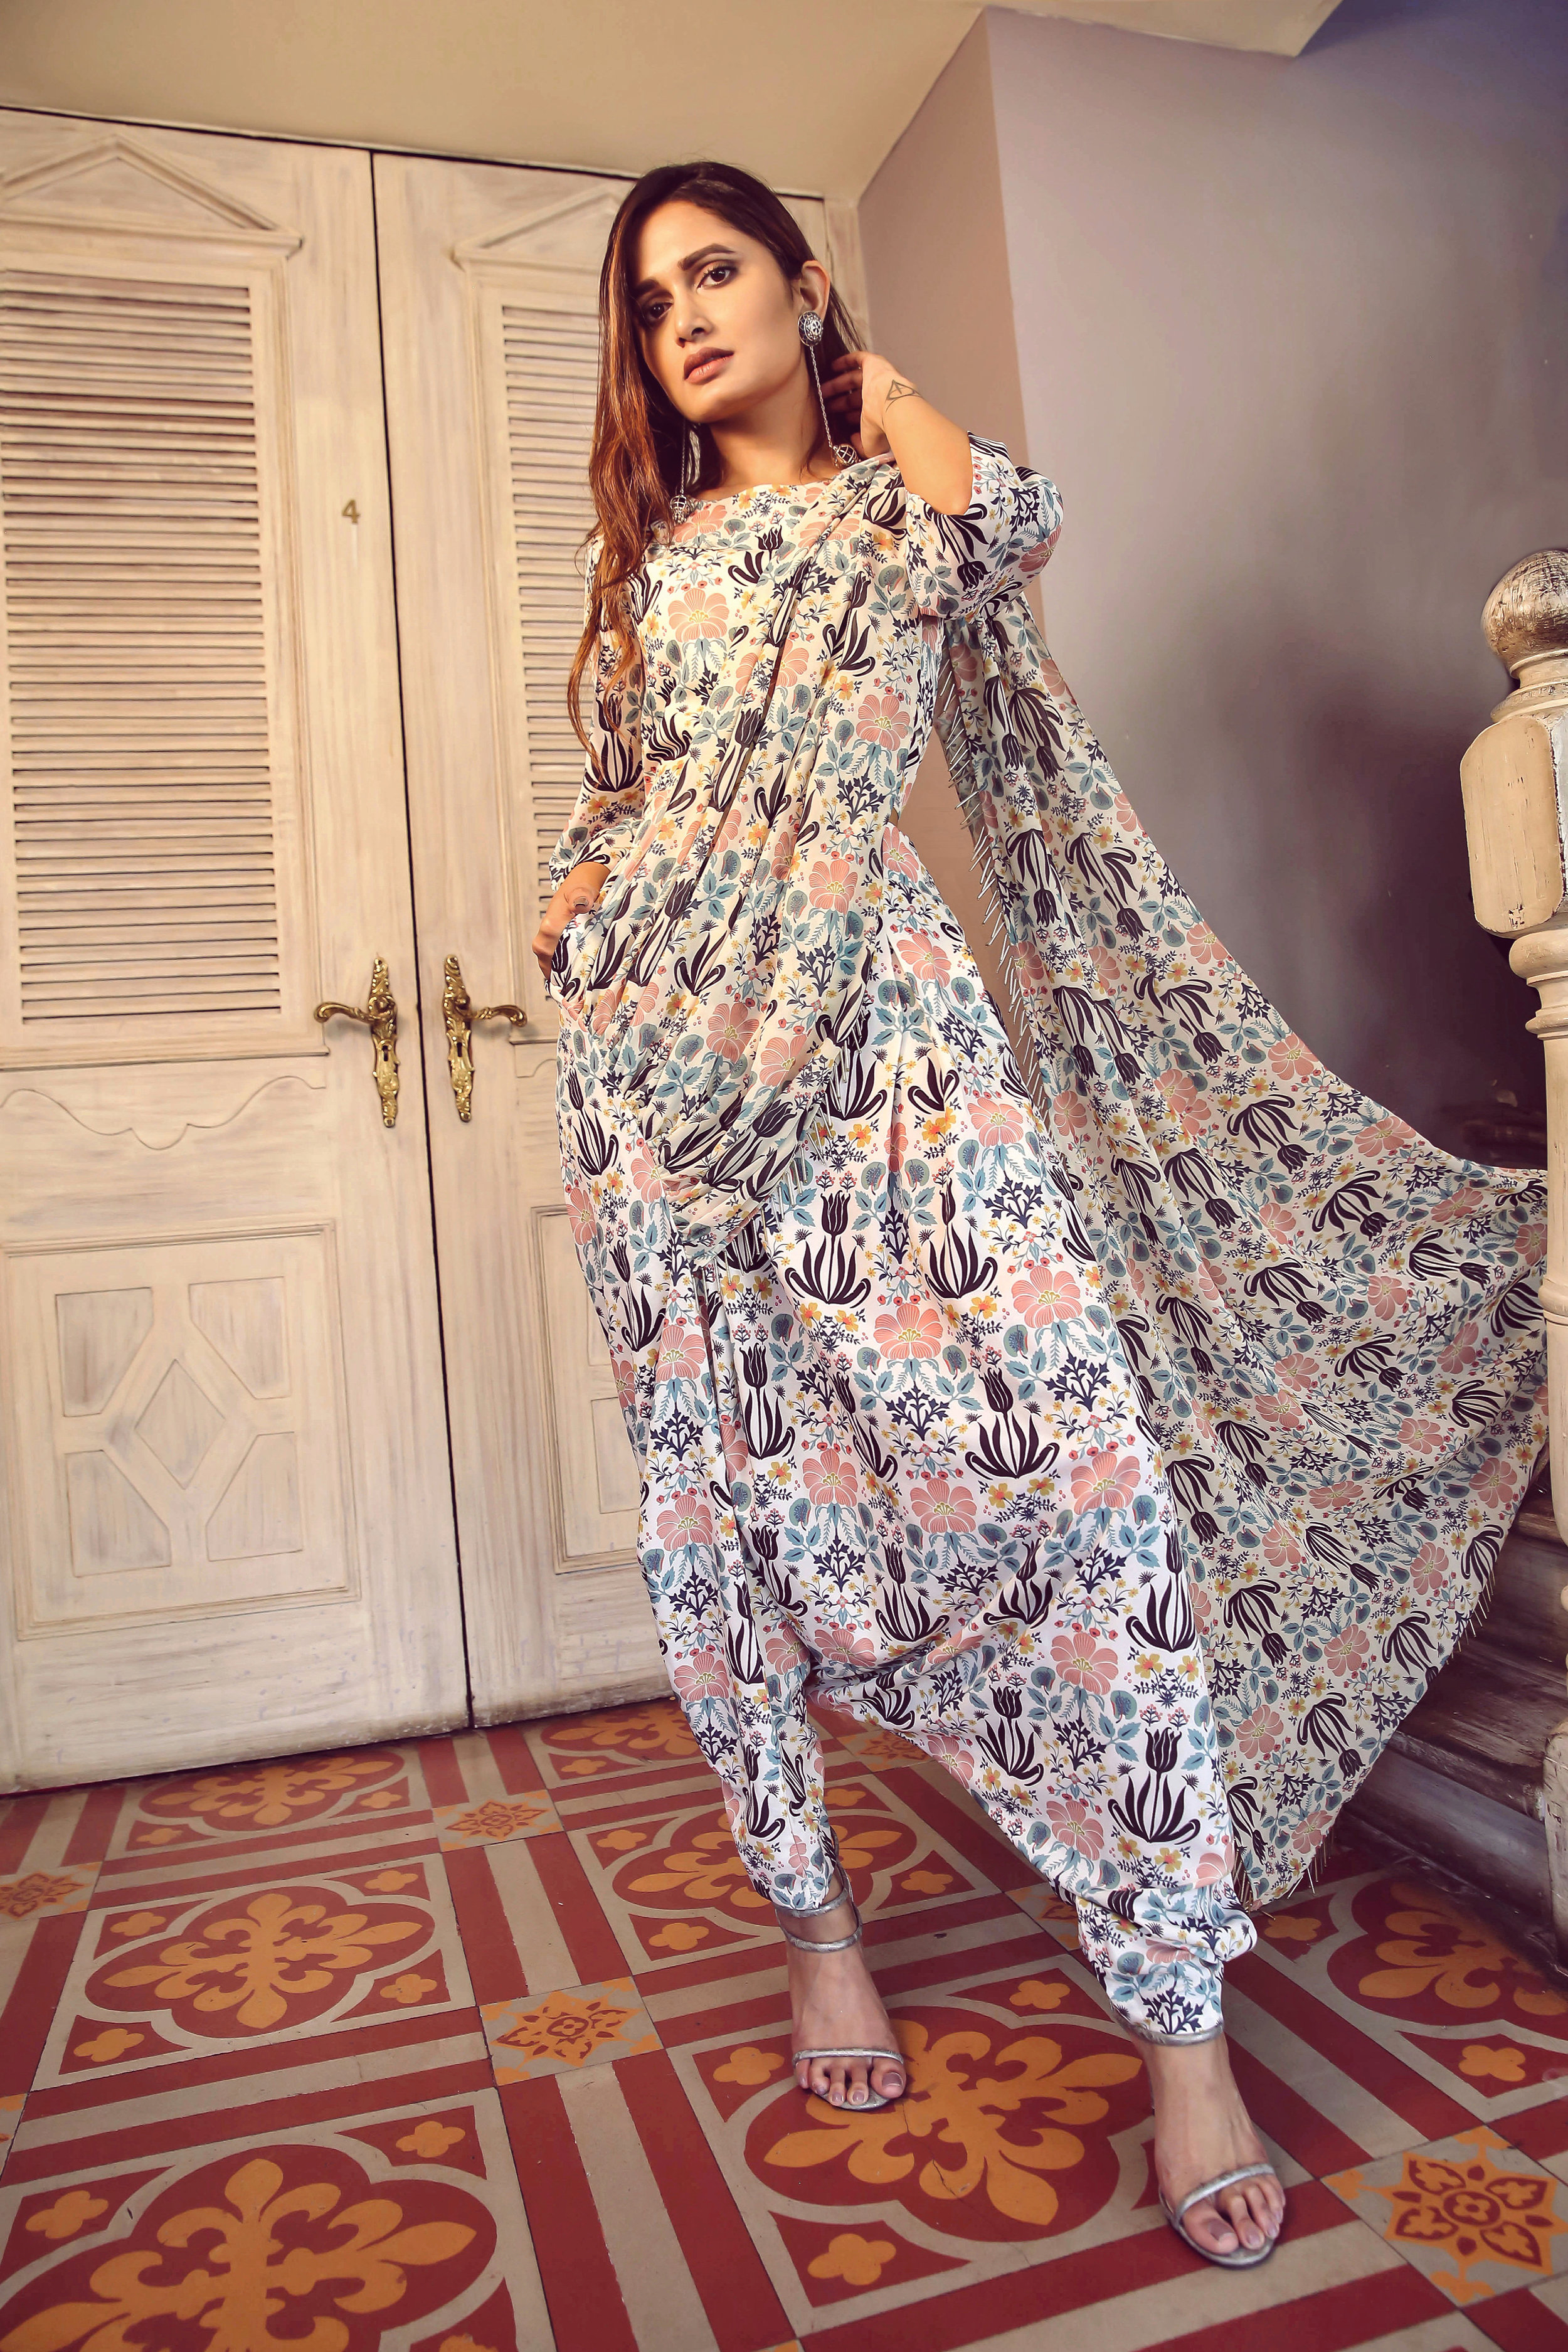 the-chic-armoire-nidhi-kunder-payal-singhal-6